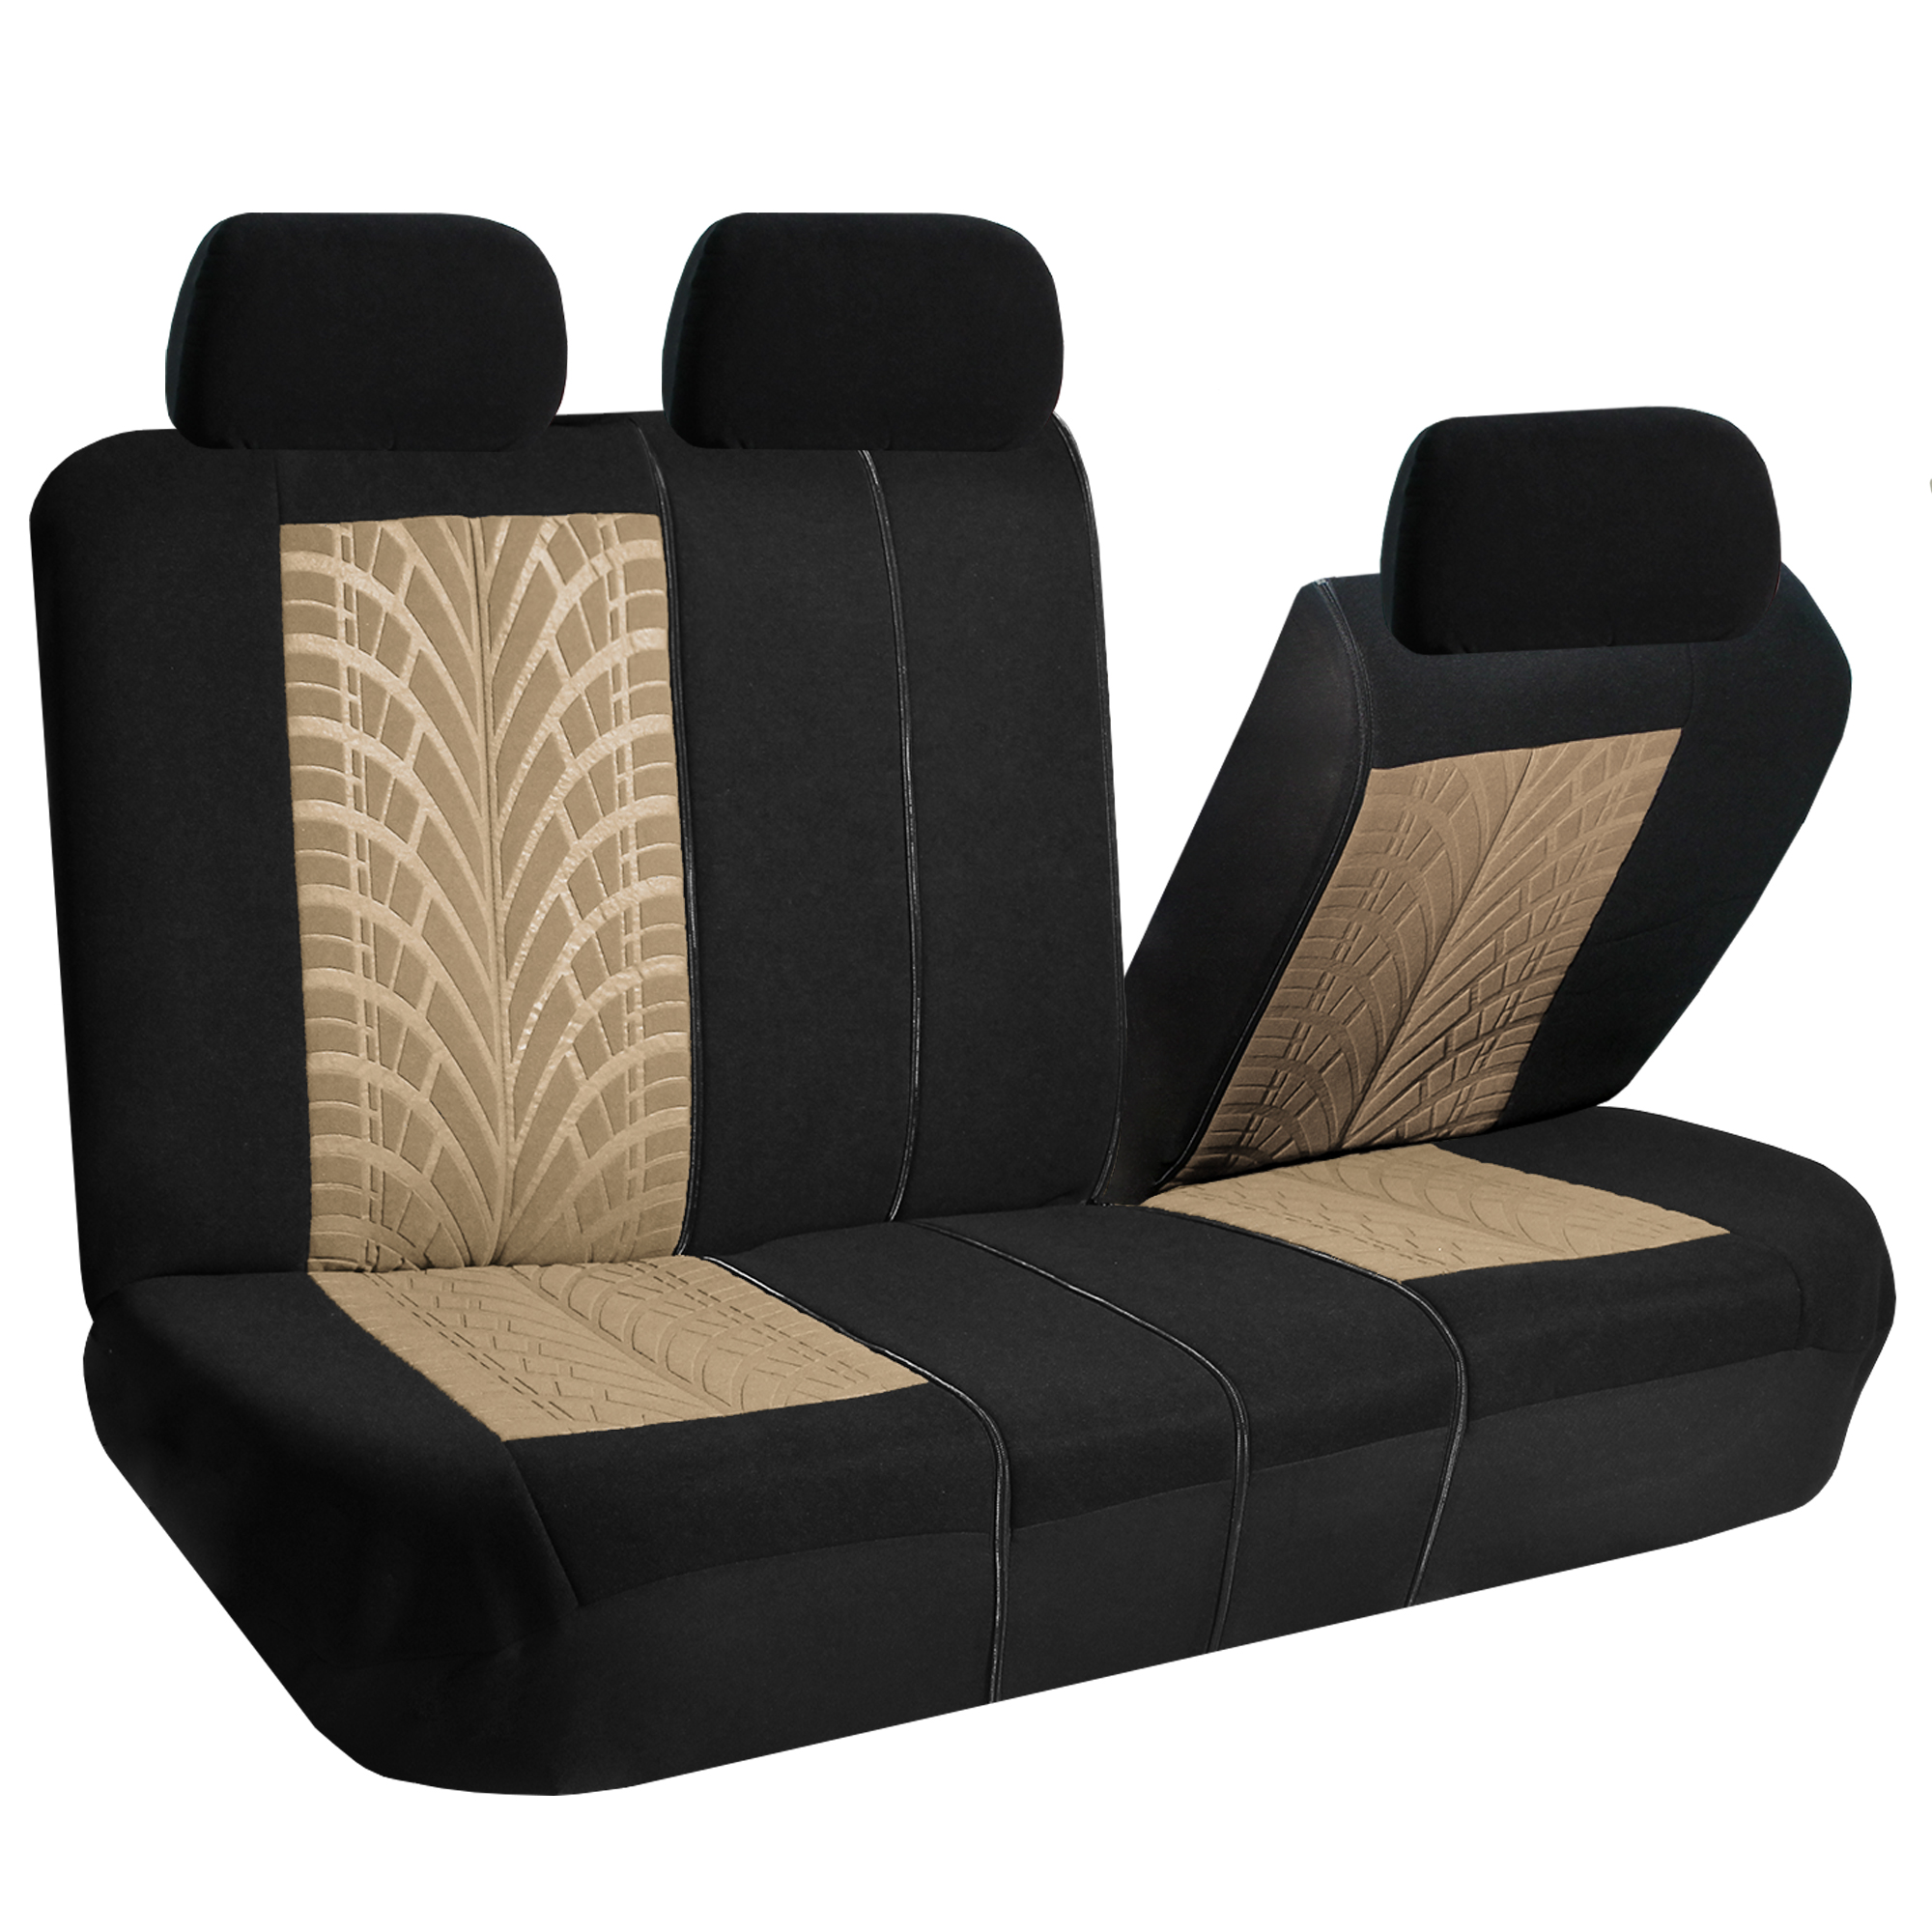 beige car seat covers set for auto w floor mat ebay. Black Bedroom Furniture Sets. Home Design Ideas